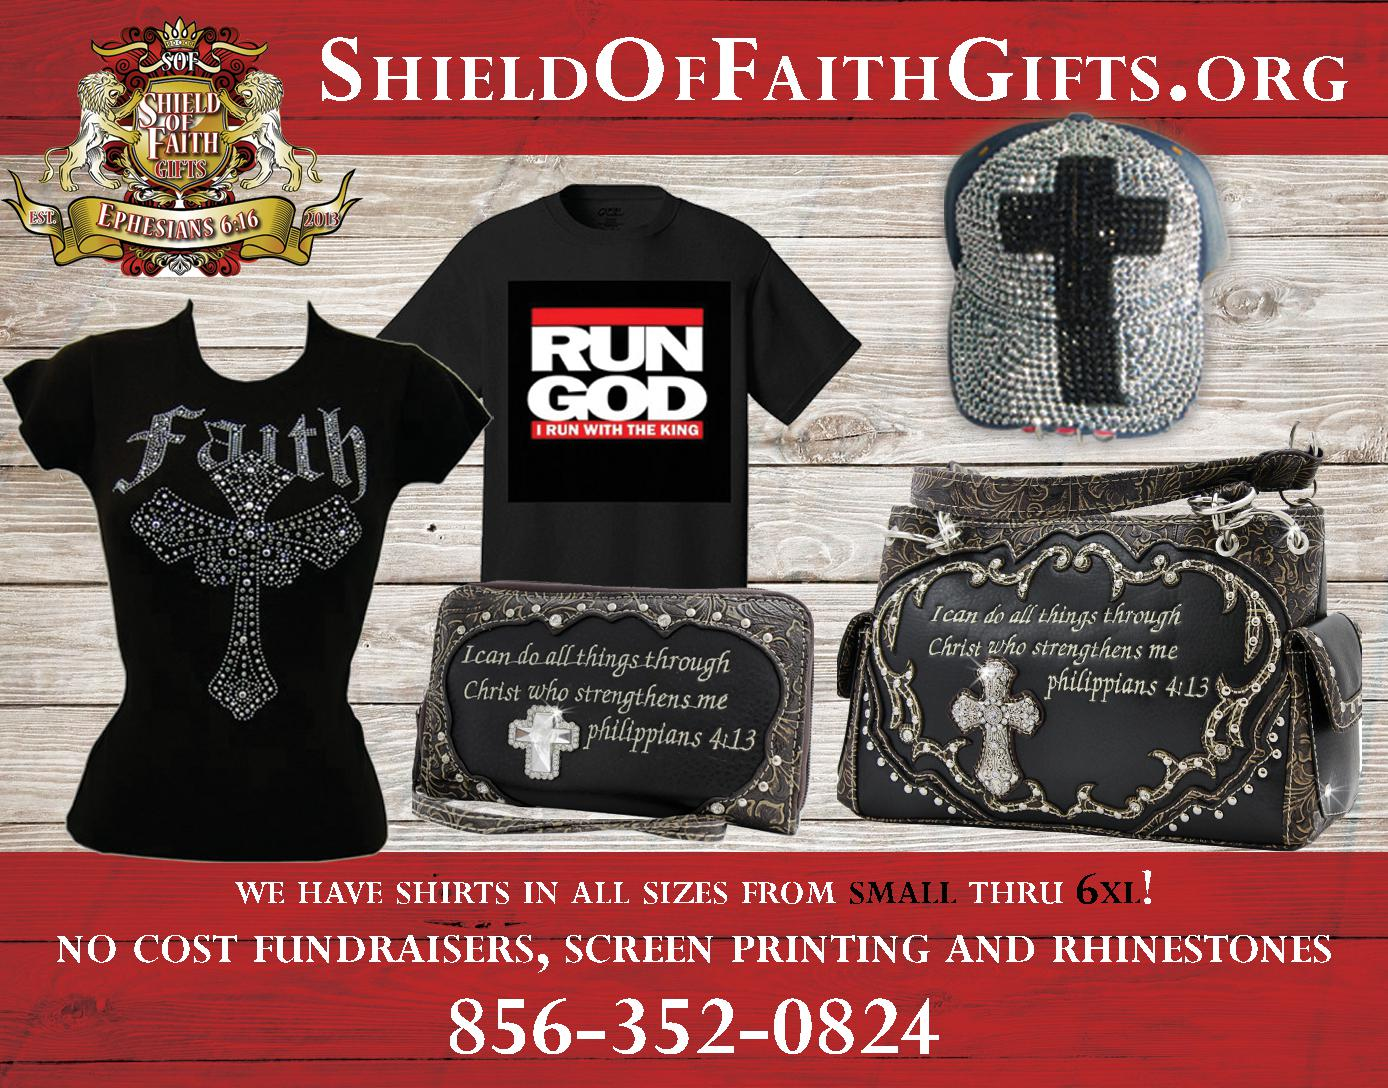 Shield of Faith Gifts